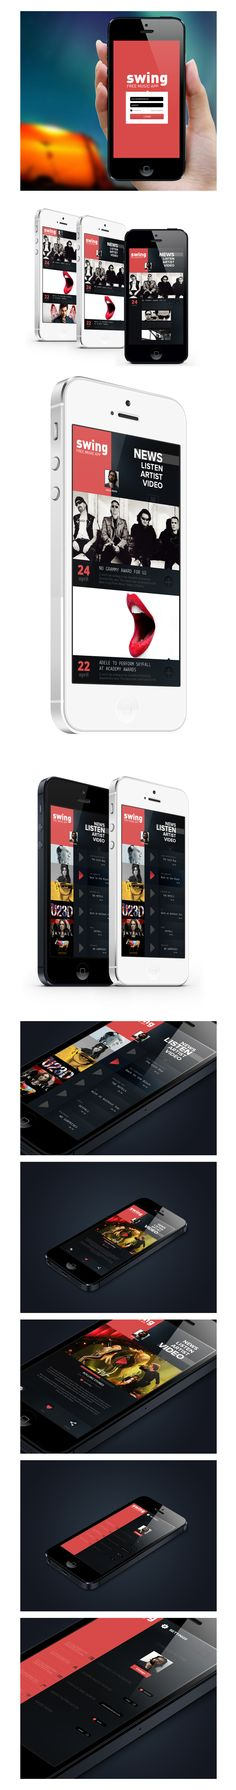 Dates, Listings and Settings  iphone Music App. Concept